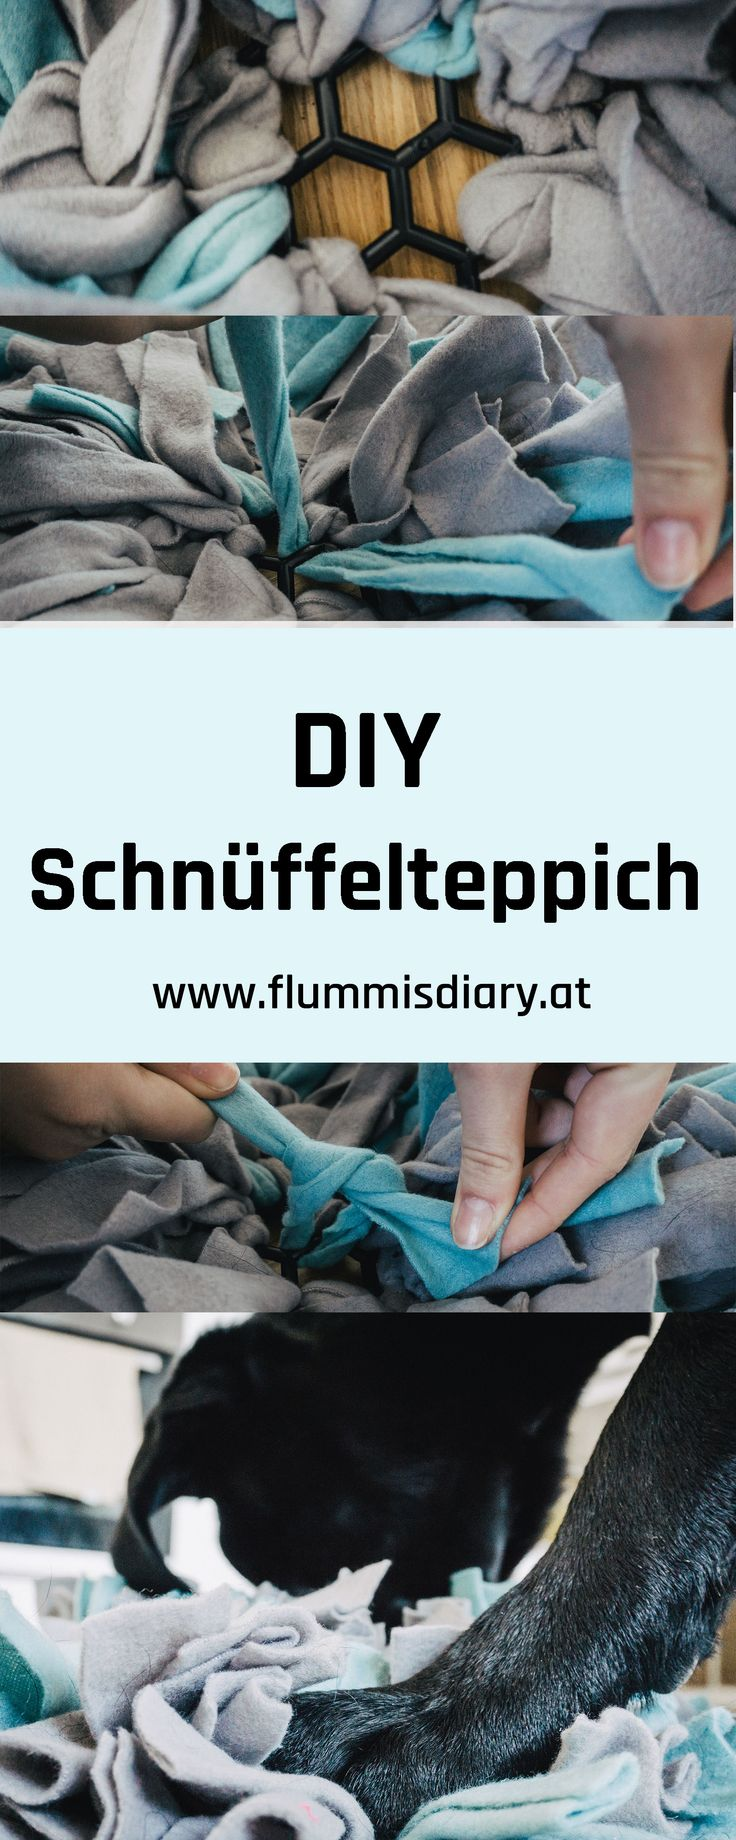 Schn DIY sniffing carpet – ideal utilization for working dog owners